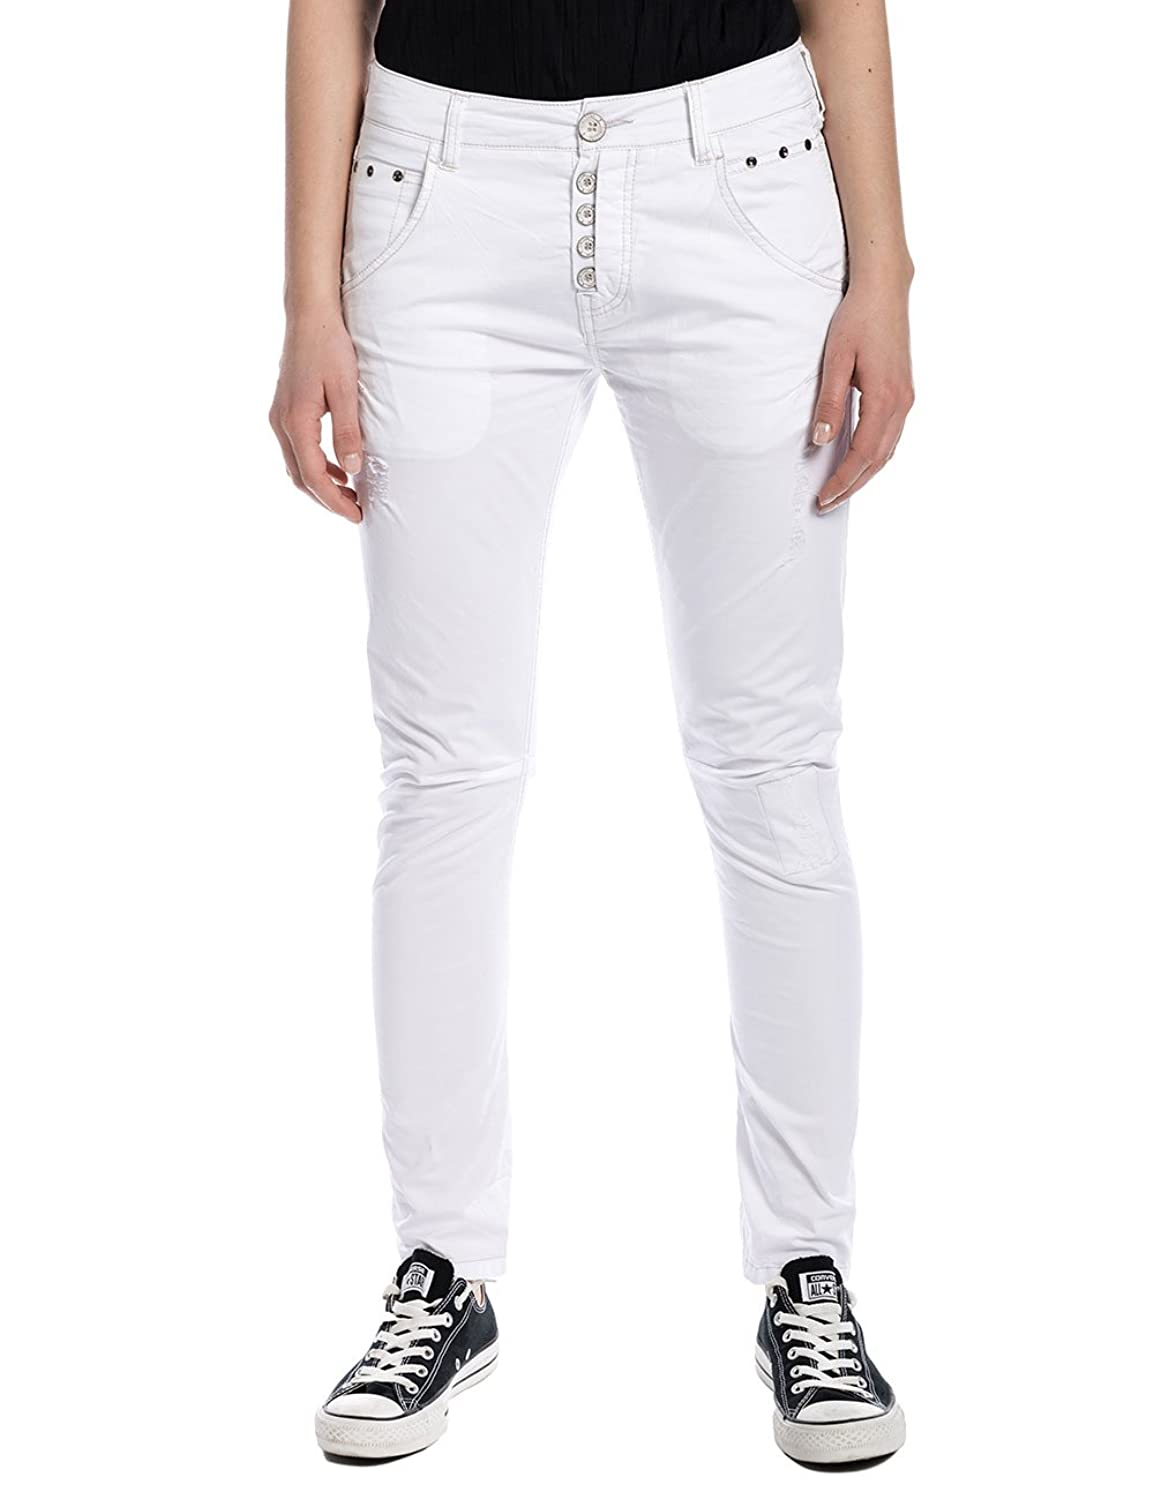 Timezone Damen Hose Rivatz Fashion Pants